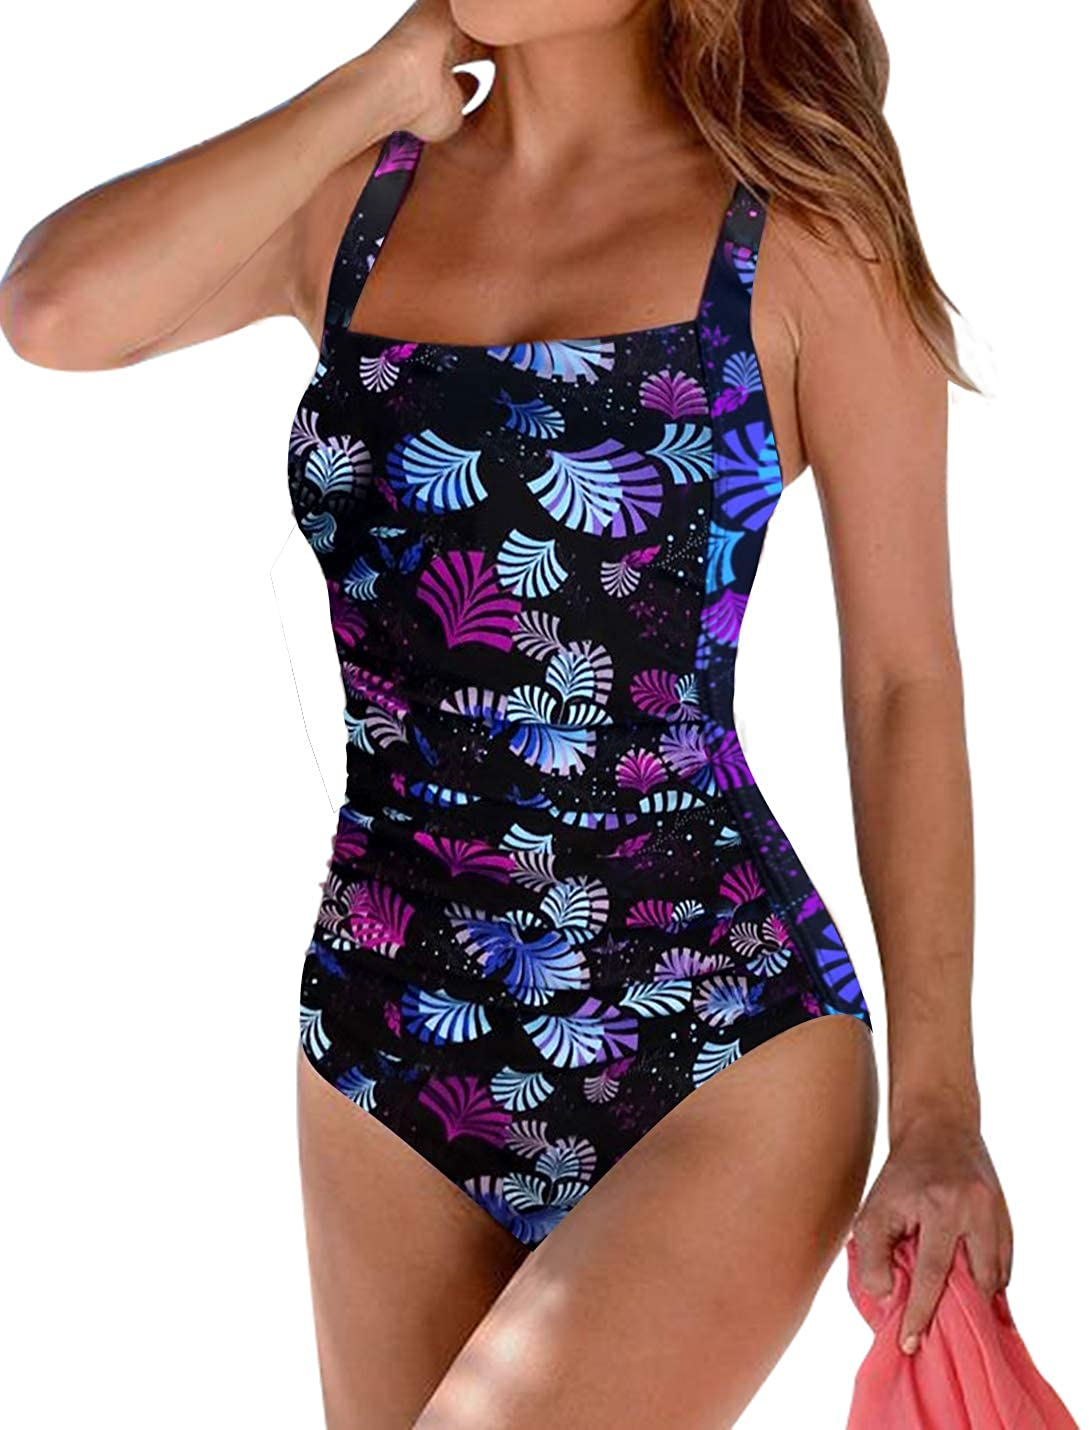 Upopby Womens Vintage Padded Push up One Piece Swimsuits Tummy Control Bathing Suits Plus Size Swimwear